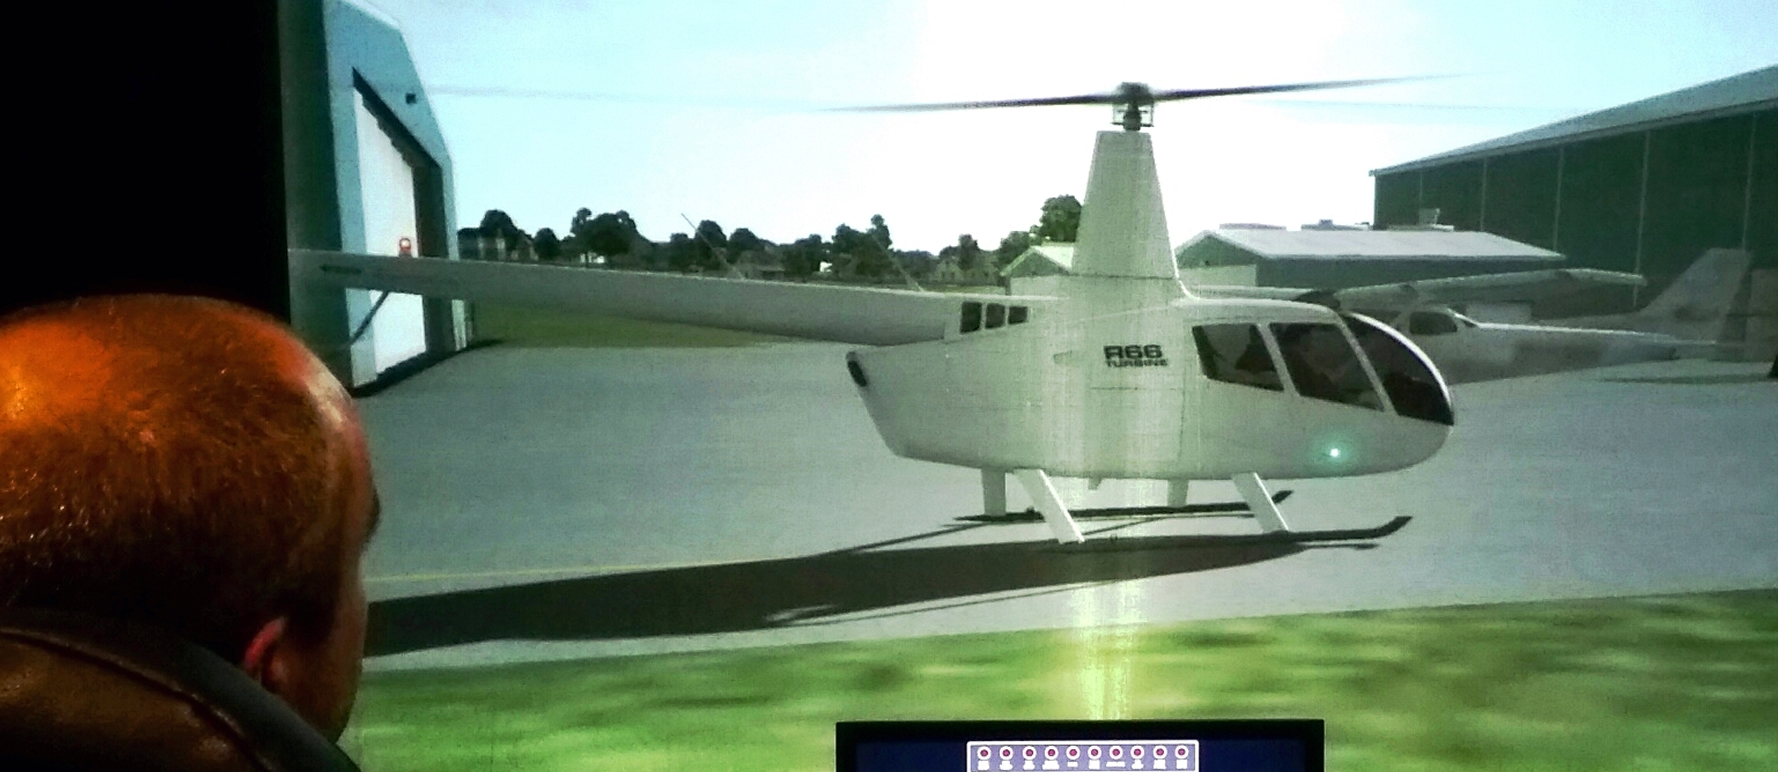 1 hour helicopter flight simulator experience, Cumbernauld Airport